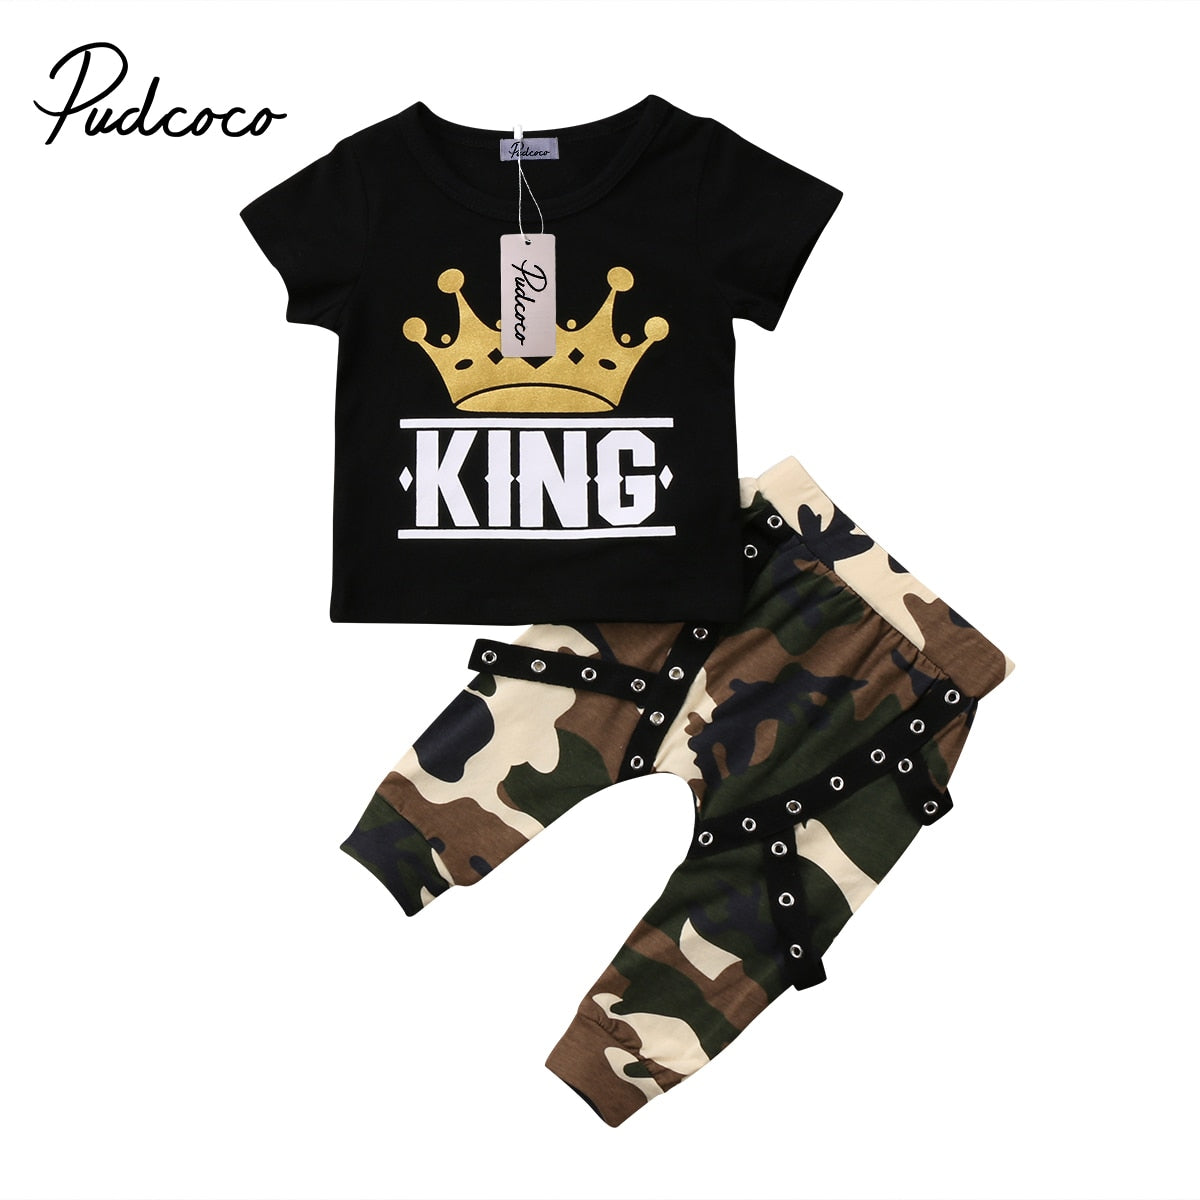 King T Shirt - Pro Toddlers